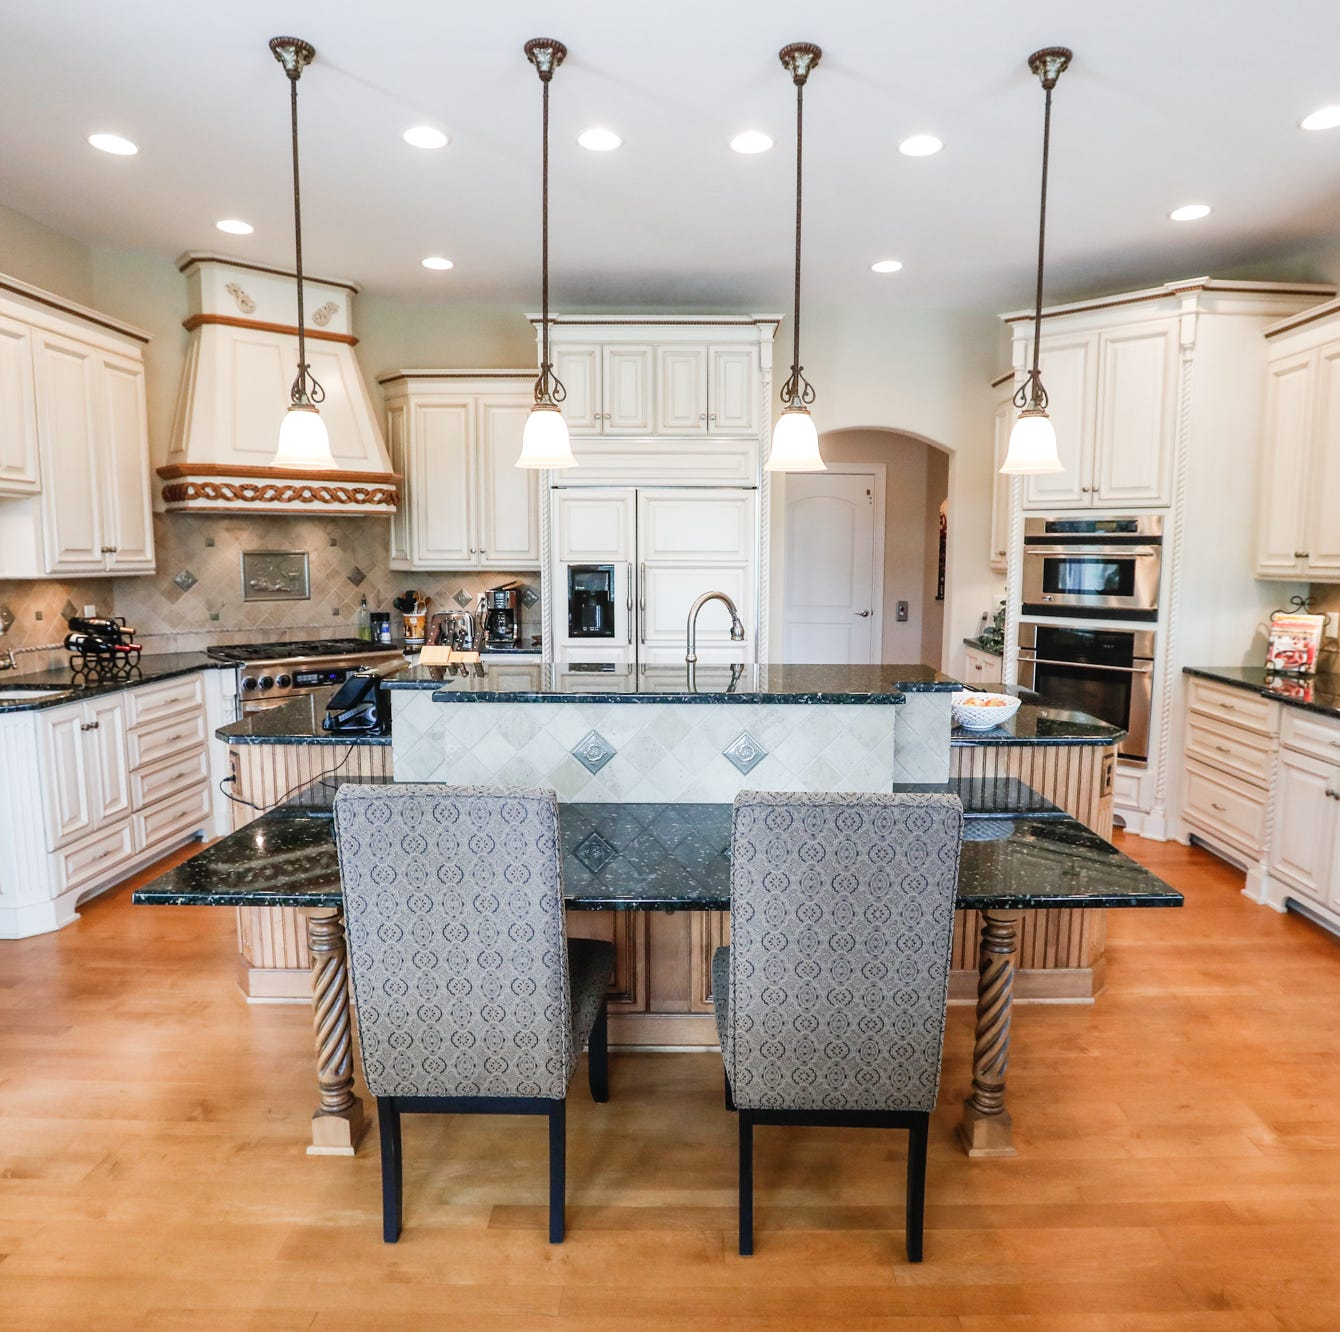 Hot Property: The kitchen in this spacious $899K Bargersville ranch was made for entertaining